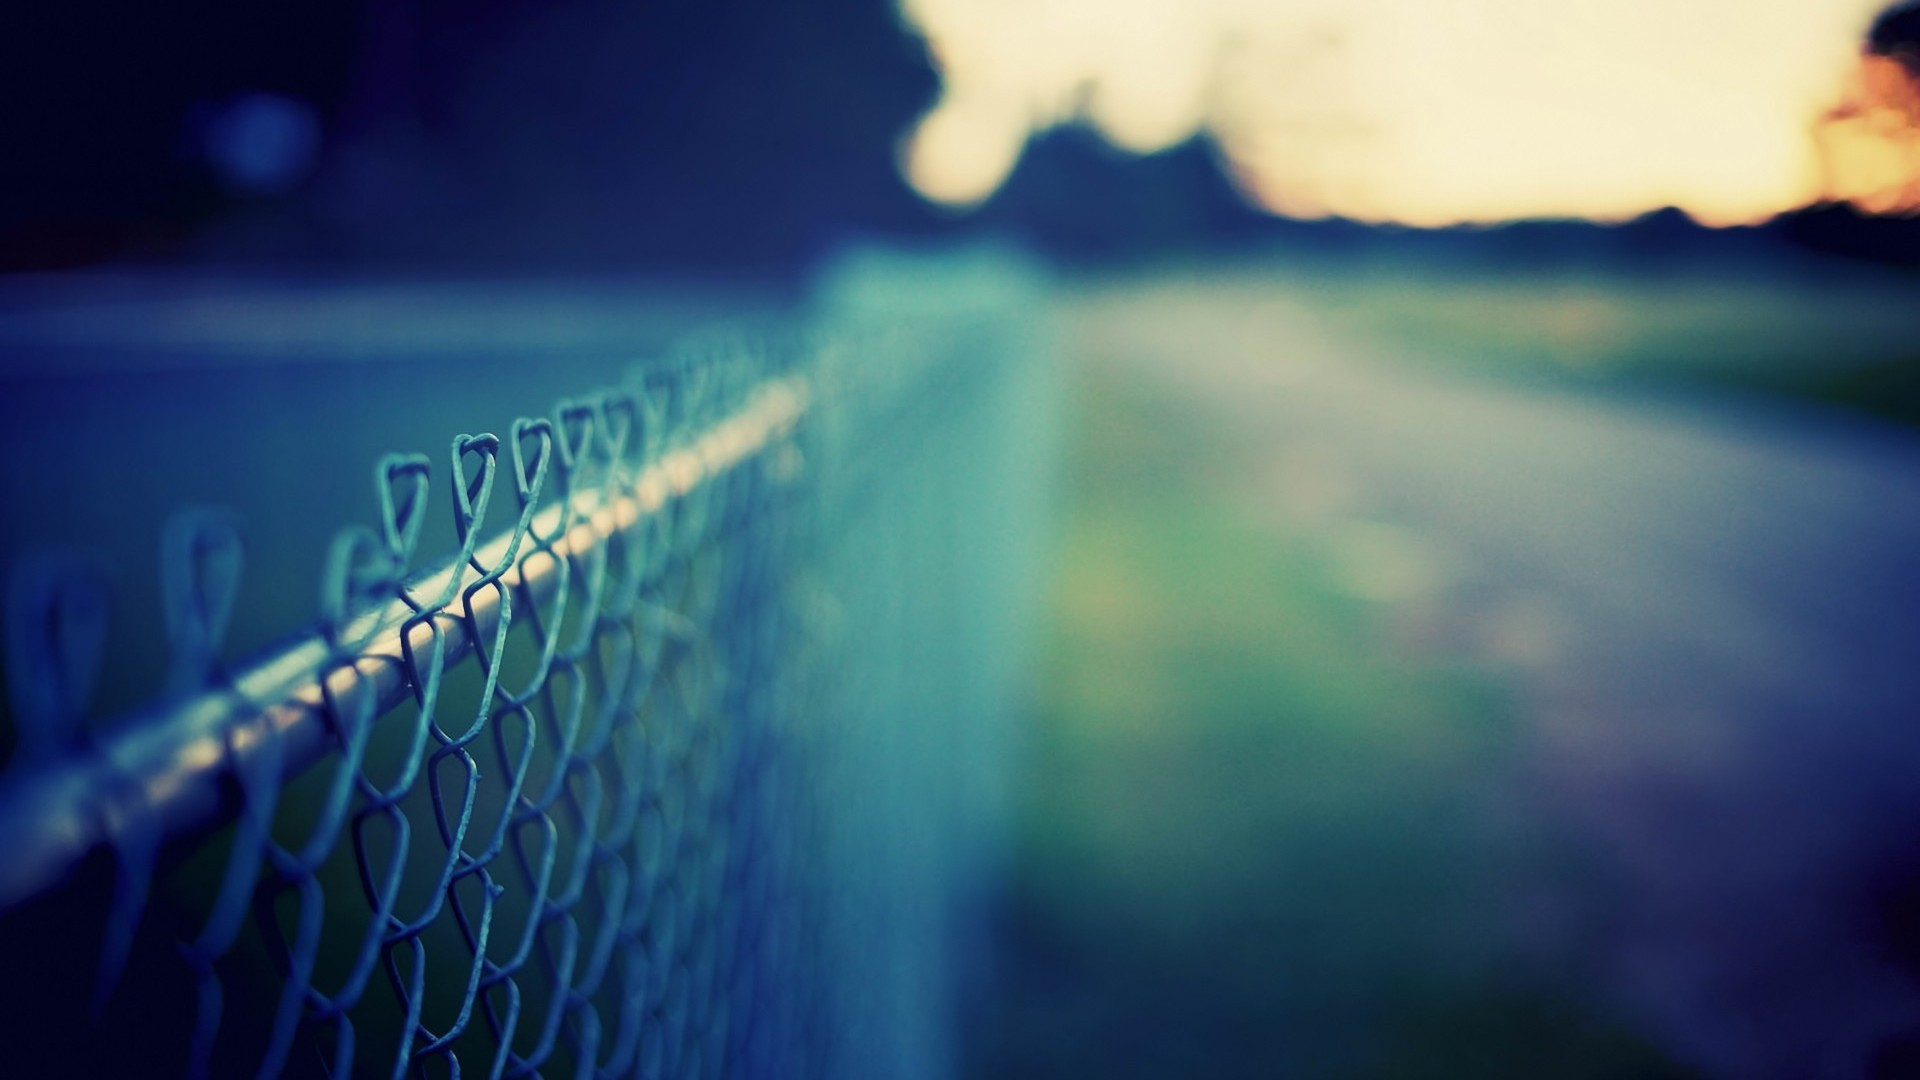 Res: 1920x1080, Cool Fence Wallpaper